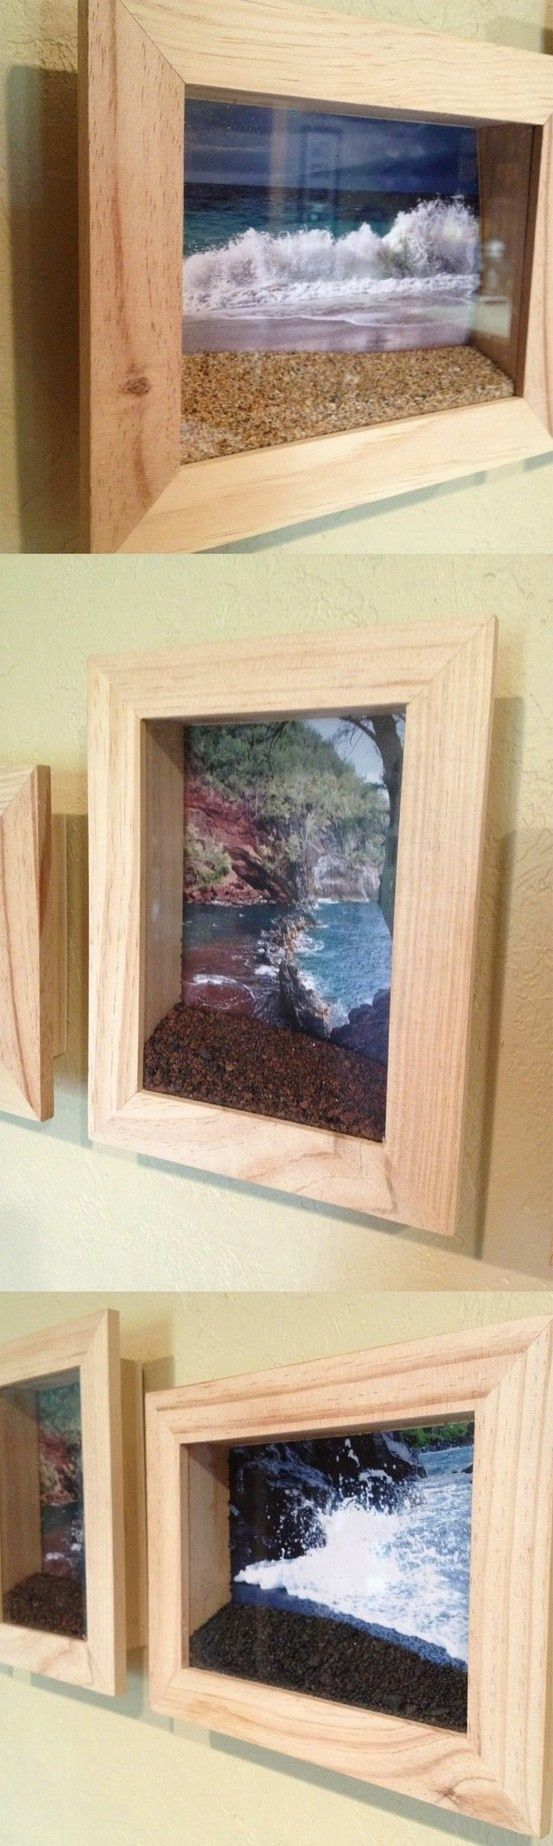 put a picture of the beach you visited in a shadow box frame and fill the - Diy Shadow Box Frame